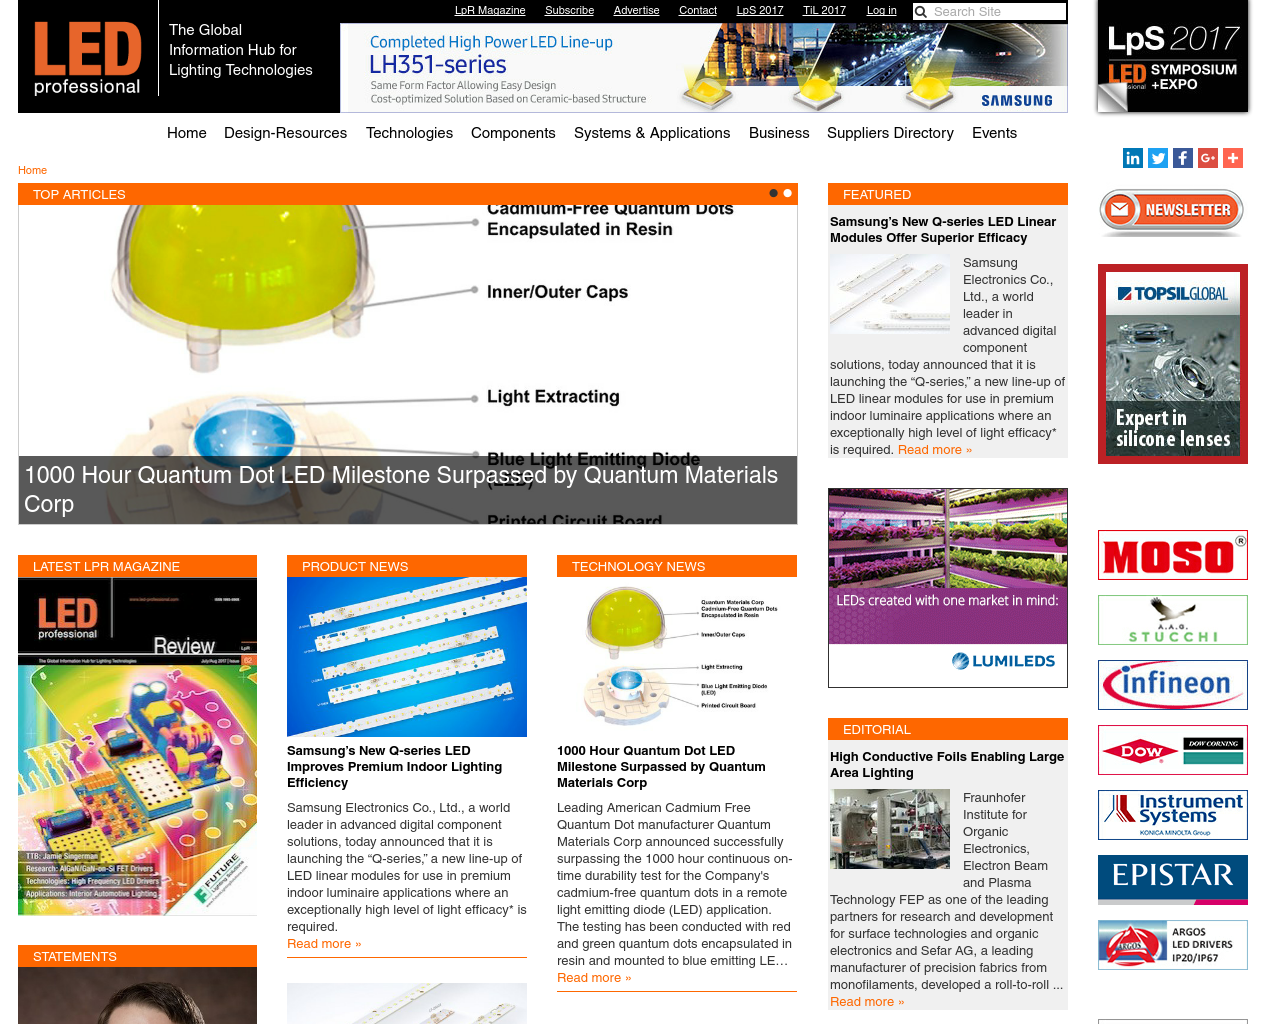 LED-Professional-Advertising-Reviews-Pricing